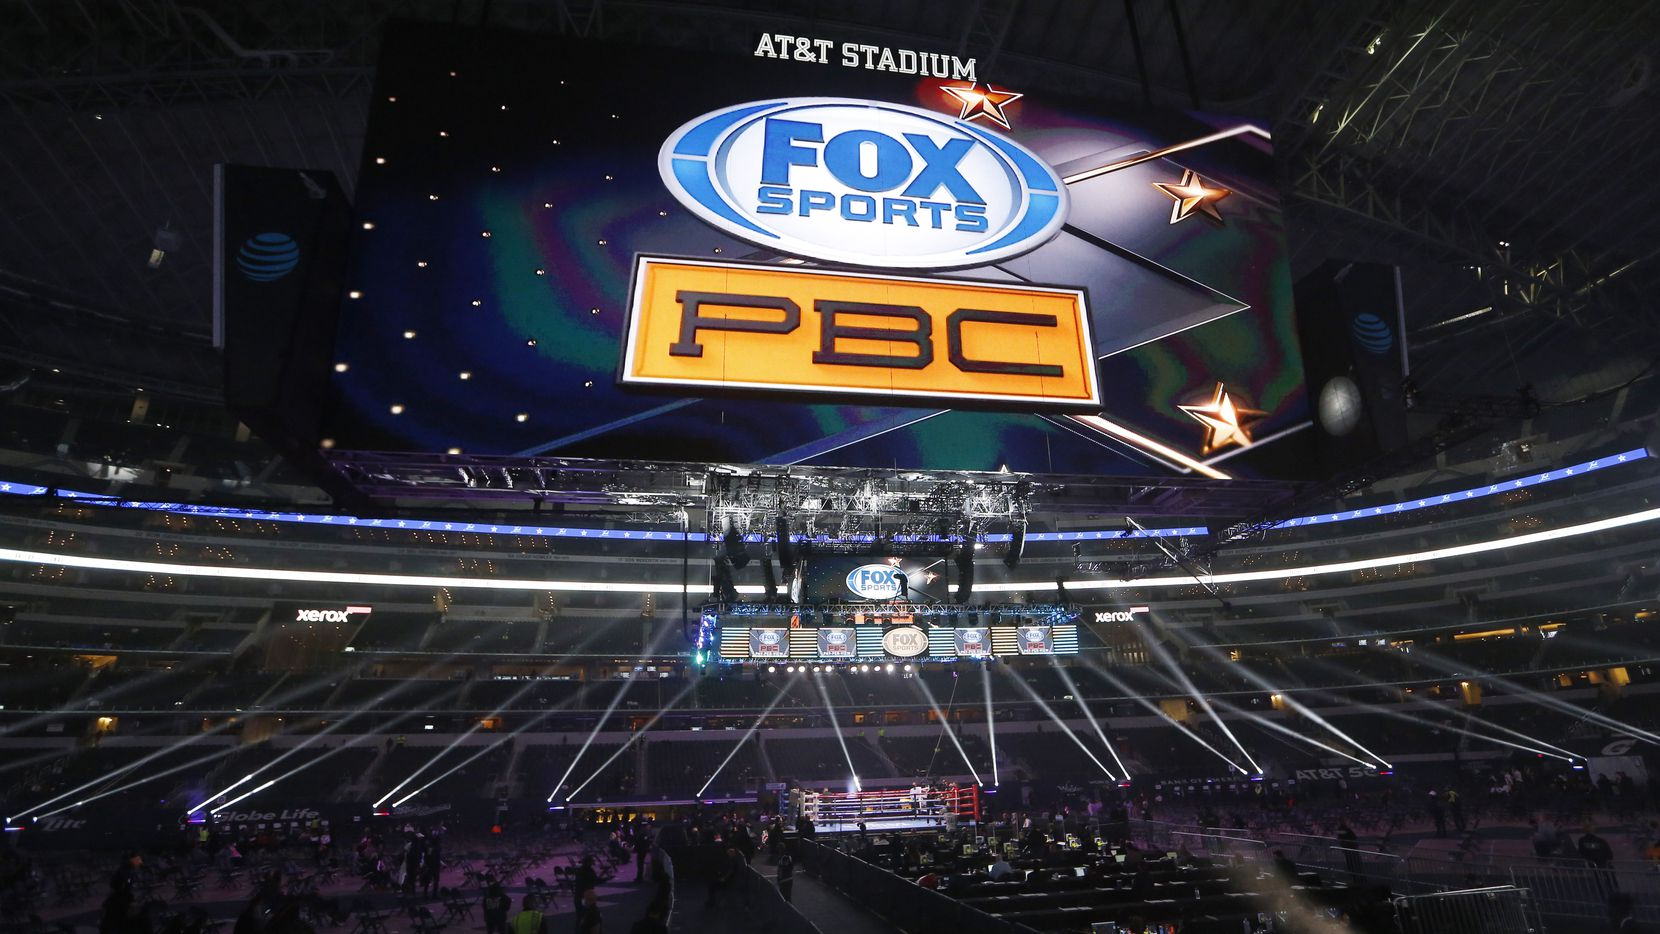 Boxing ring where Errol Spence, Jr. and Danny García will fight in a WBC & IBF World Welterweight Championship boxing match at AT&T Stadium on Saturday, December 5, 2020 in Arlington, Texas.